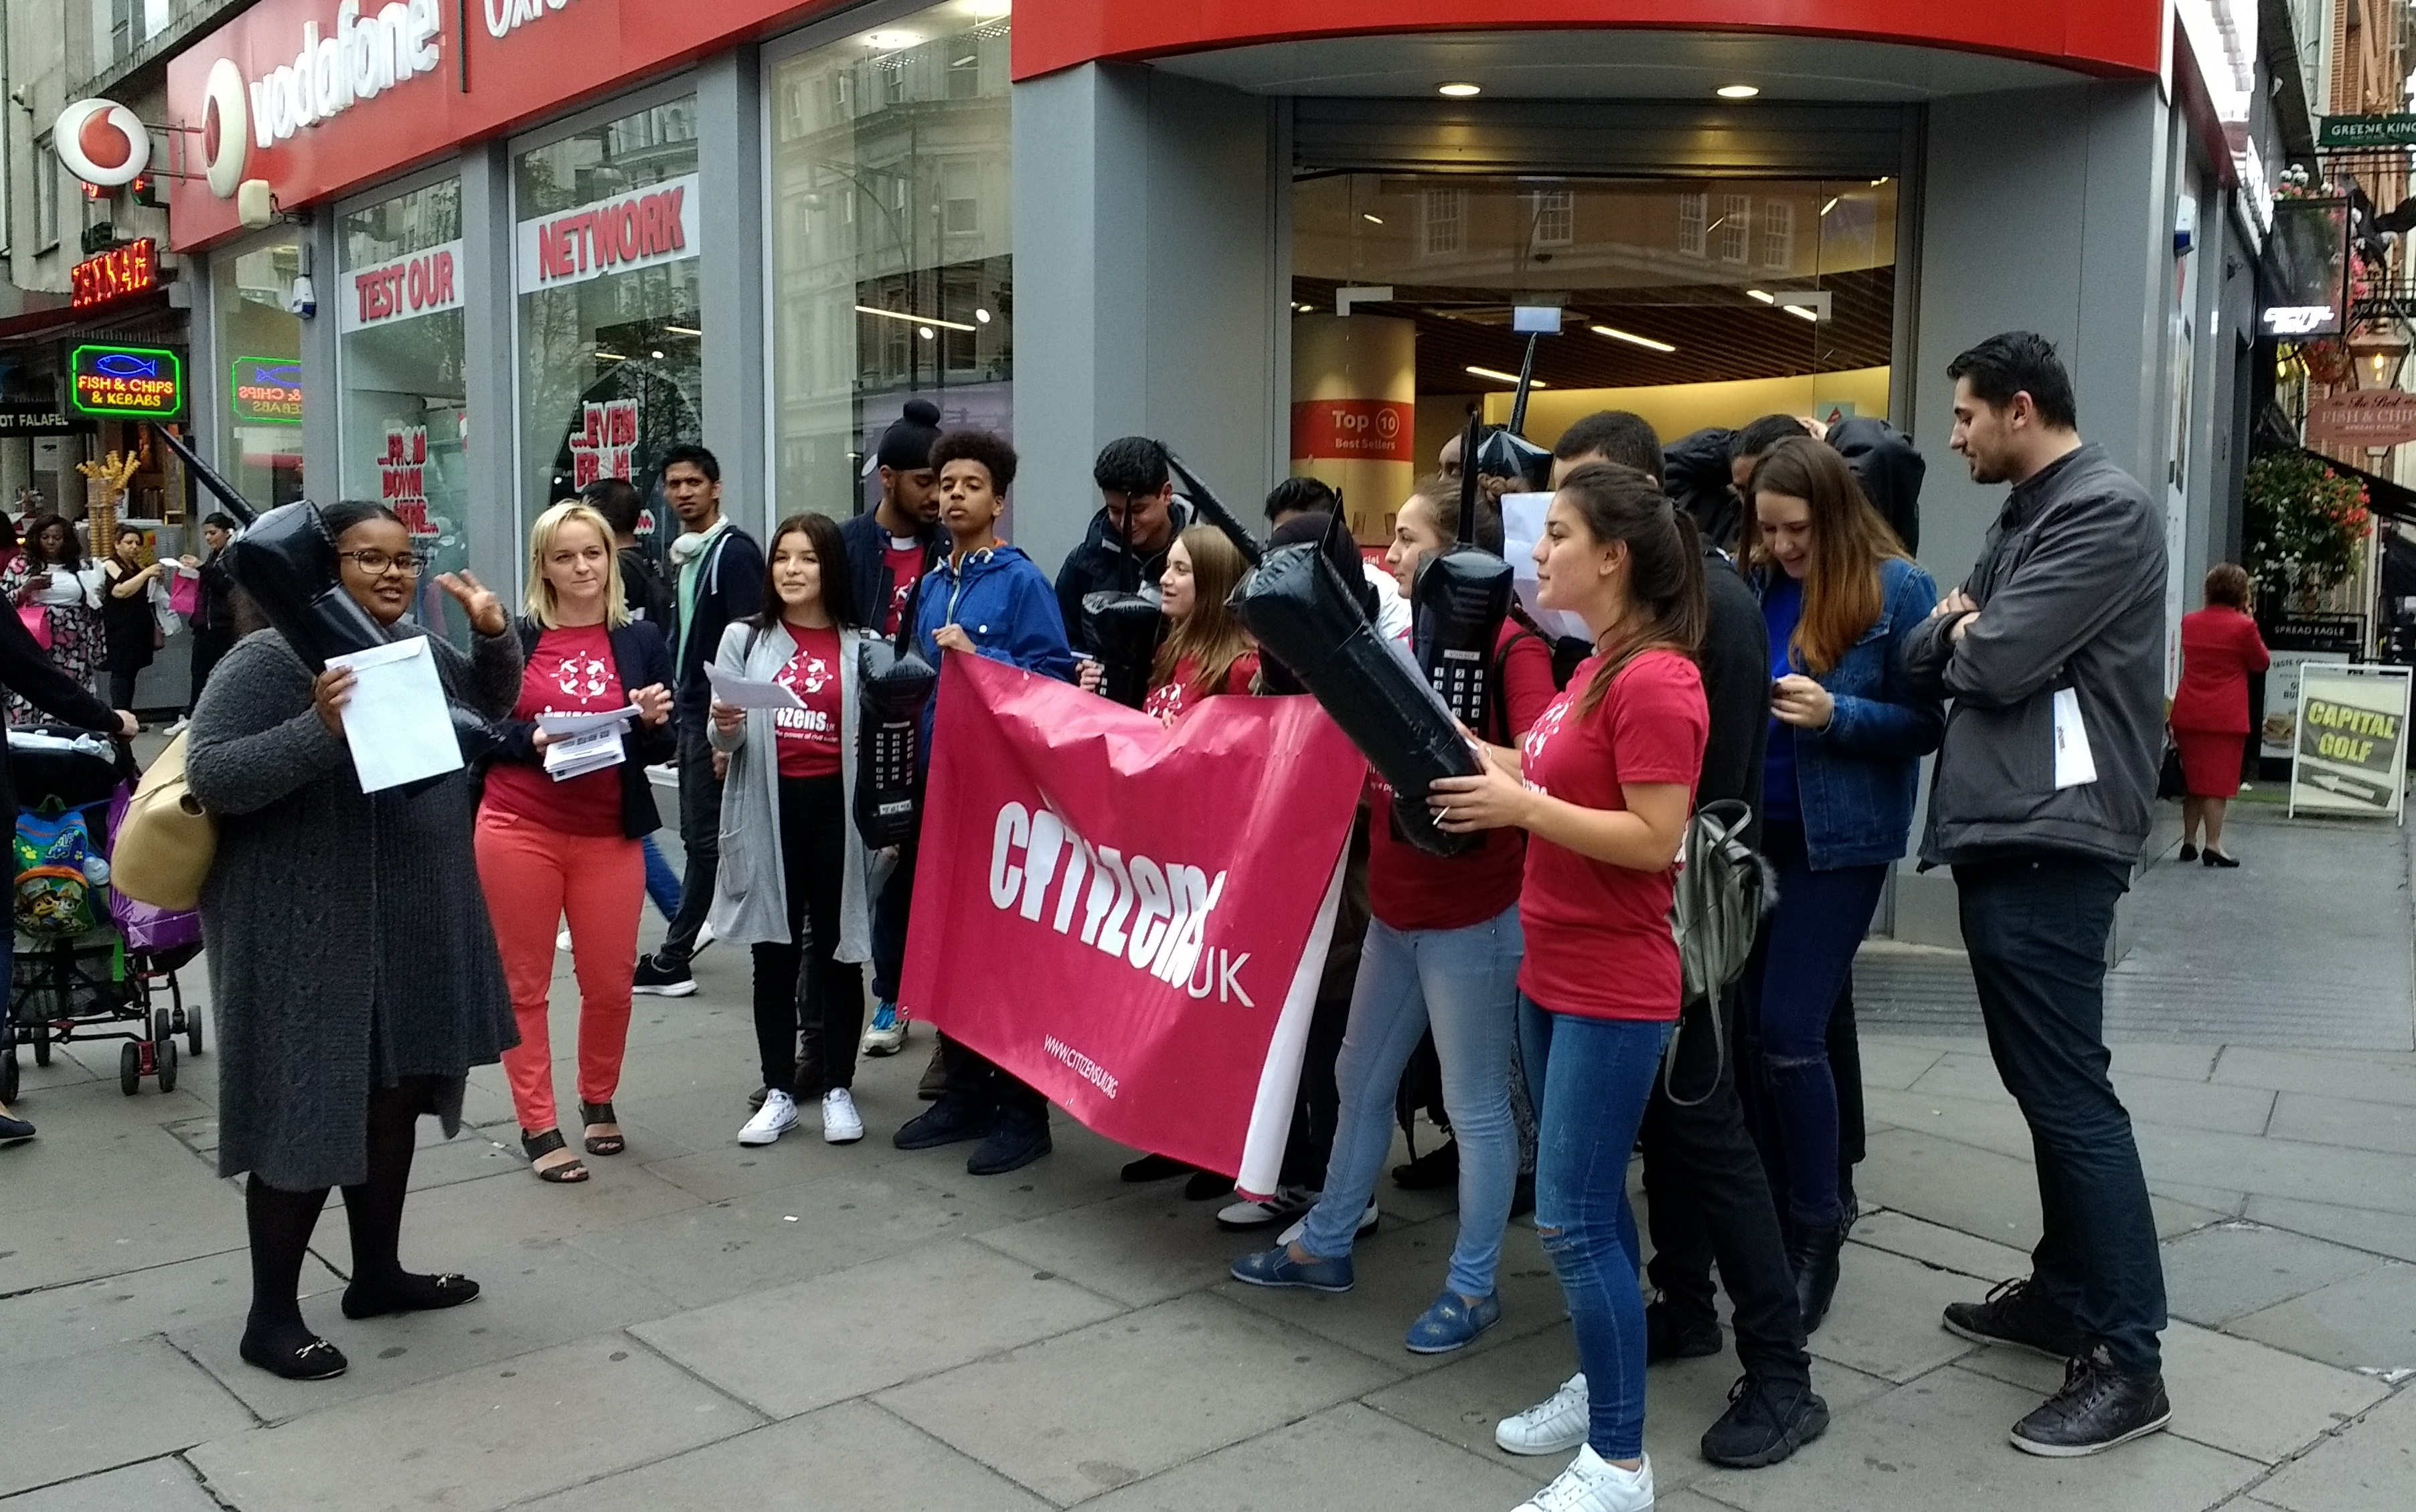 Citizens UK campaigning for Vodafone to stop funding hate